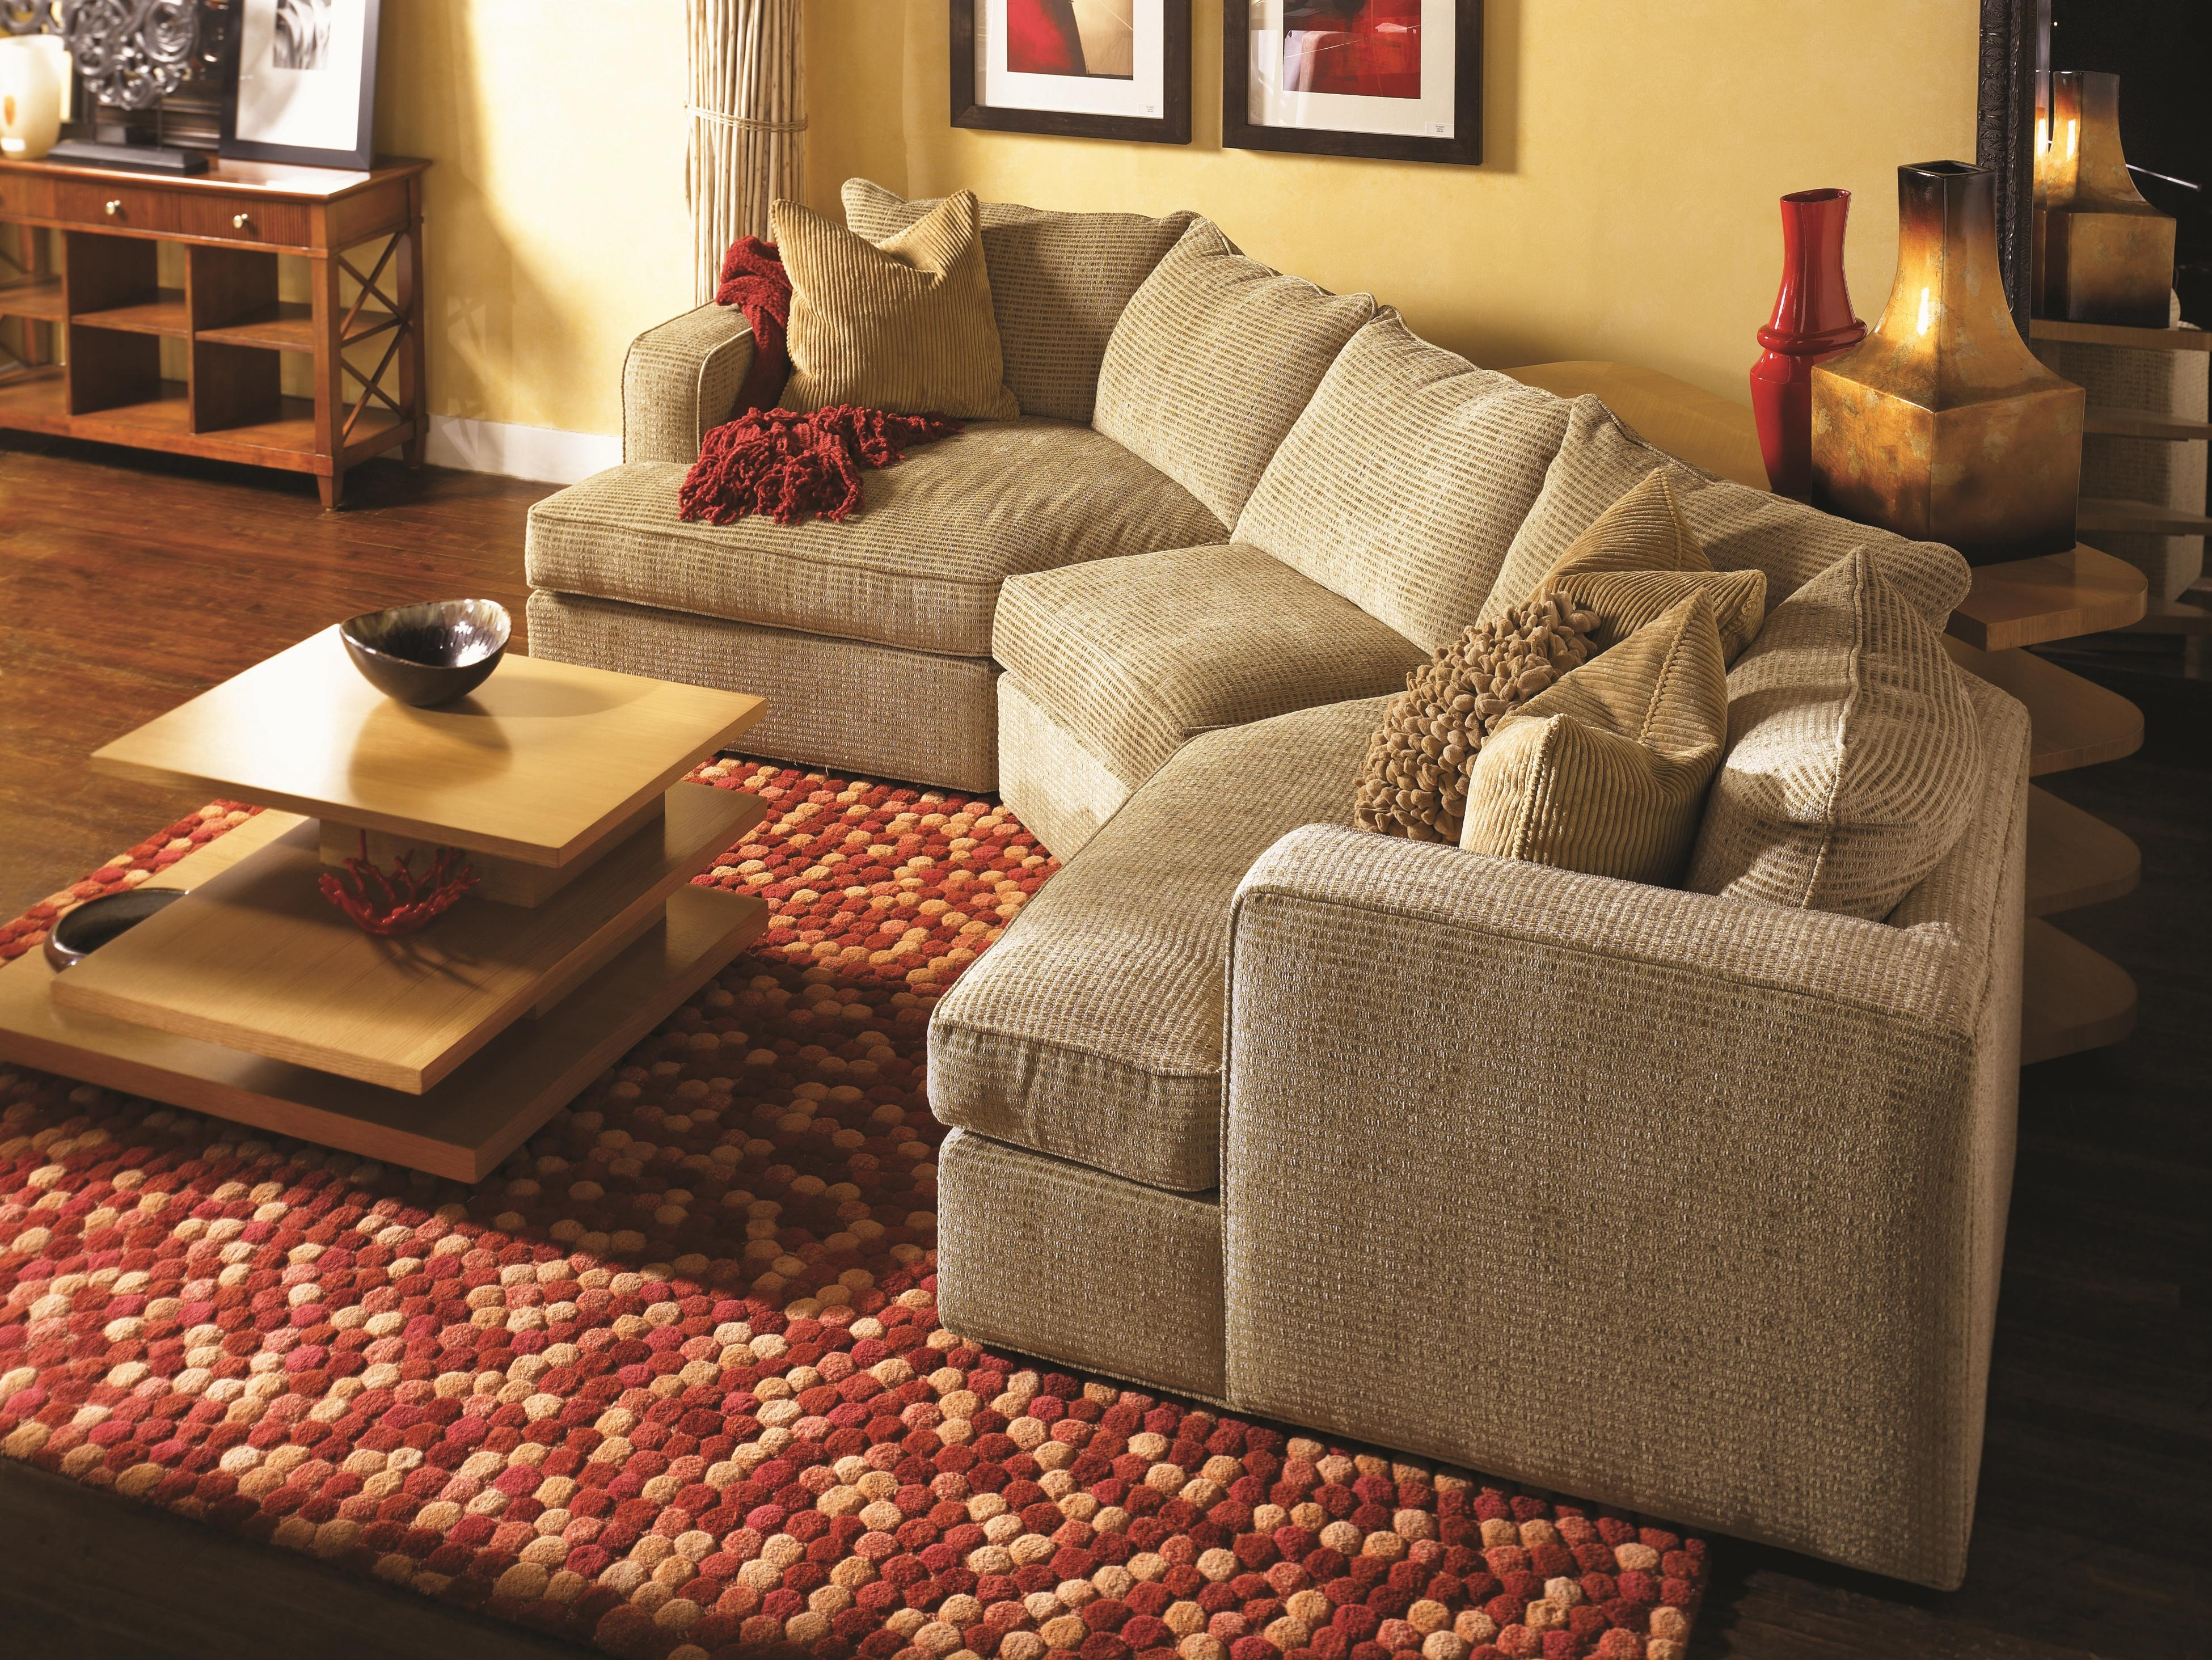 Norwalk Milford Sectional Sofa With 2 End Angle Chaises And Track Inside Norwalk Sofa And Chairs (Image 11 of 15)